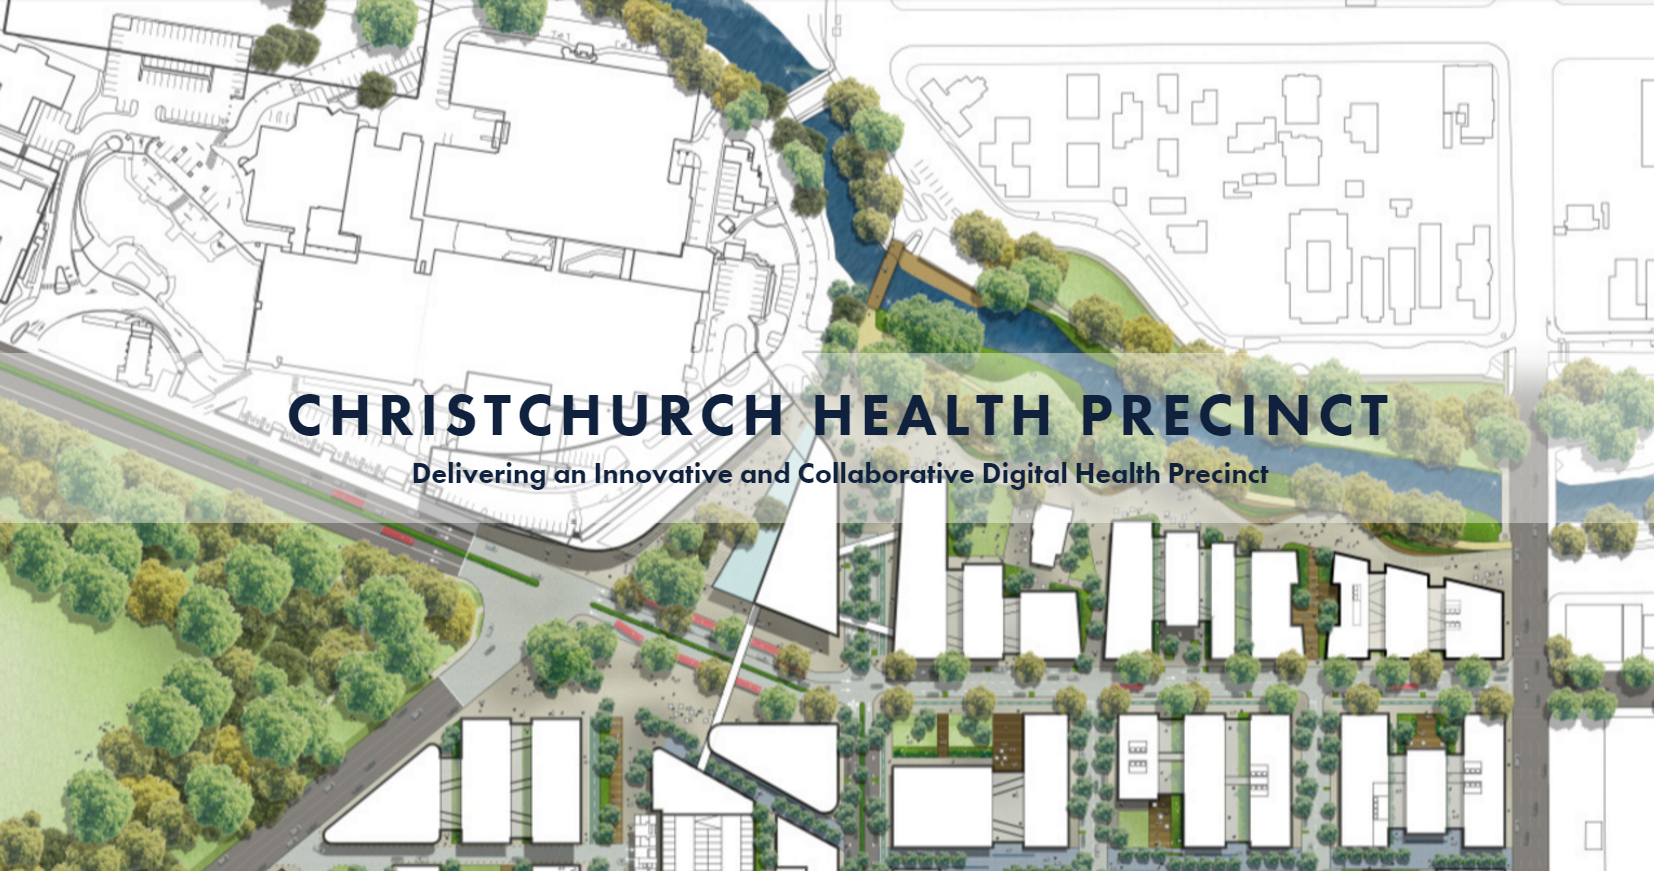 Delivering an Innovative and Collaborative Digital Health Precinct